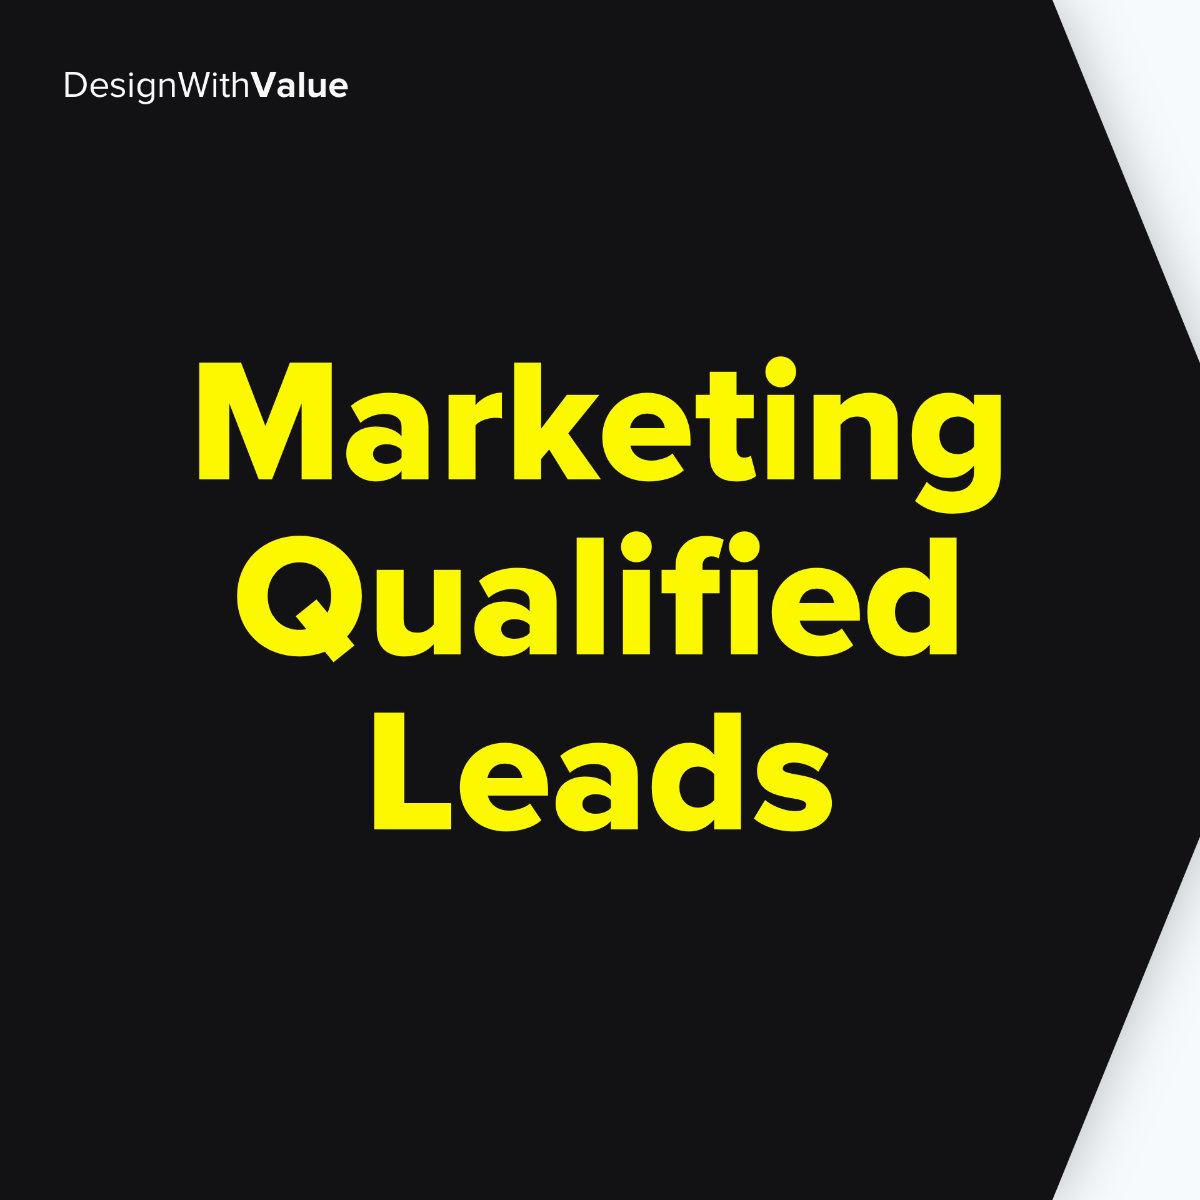 Marketing qualified leads mean